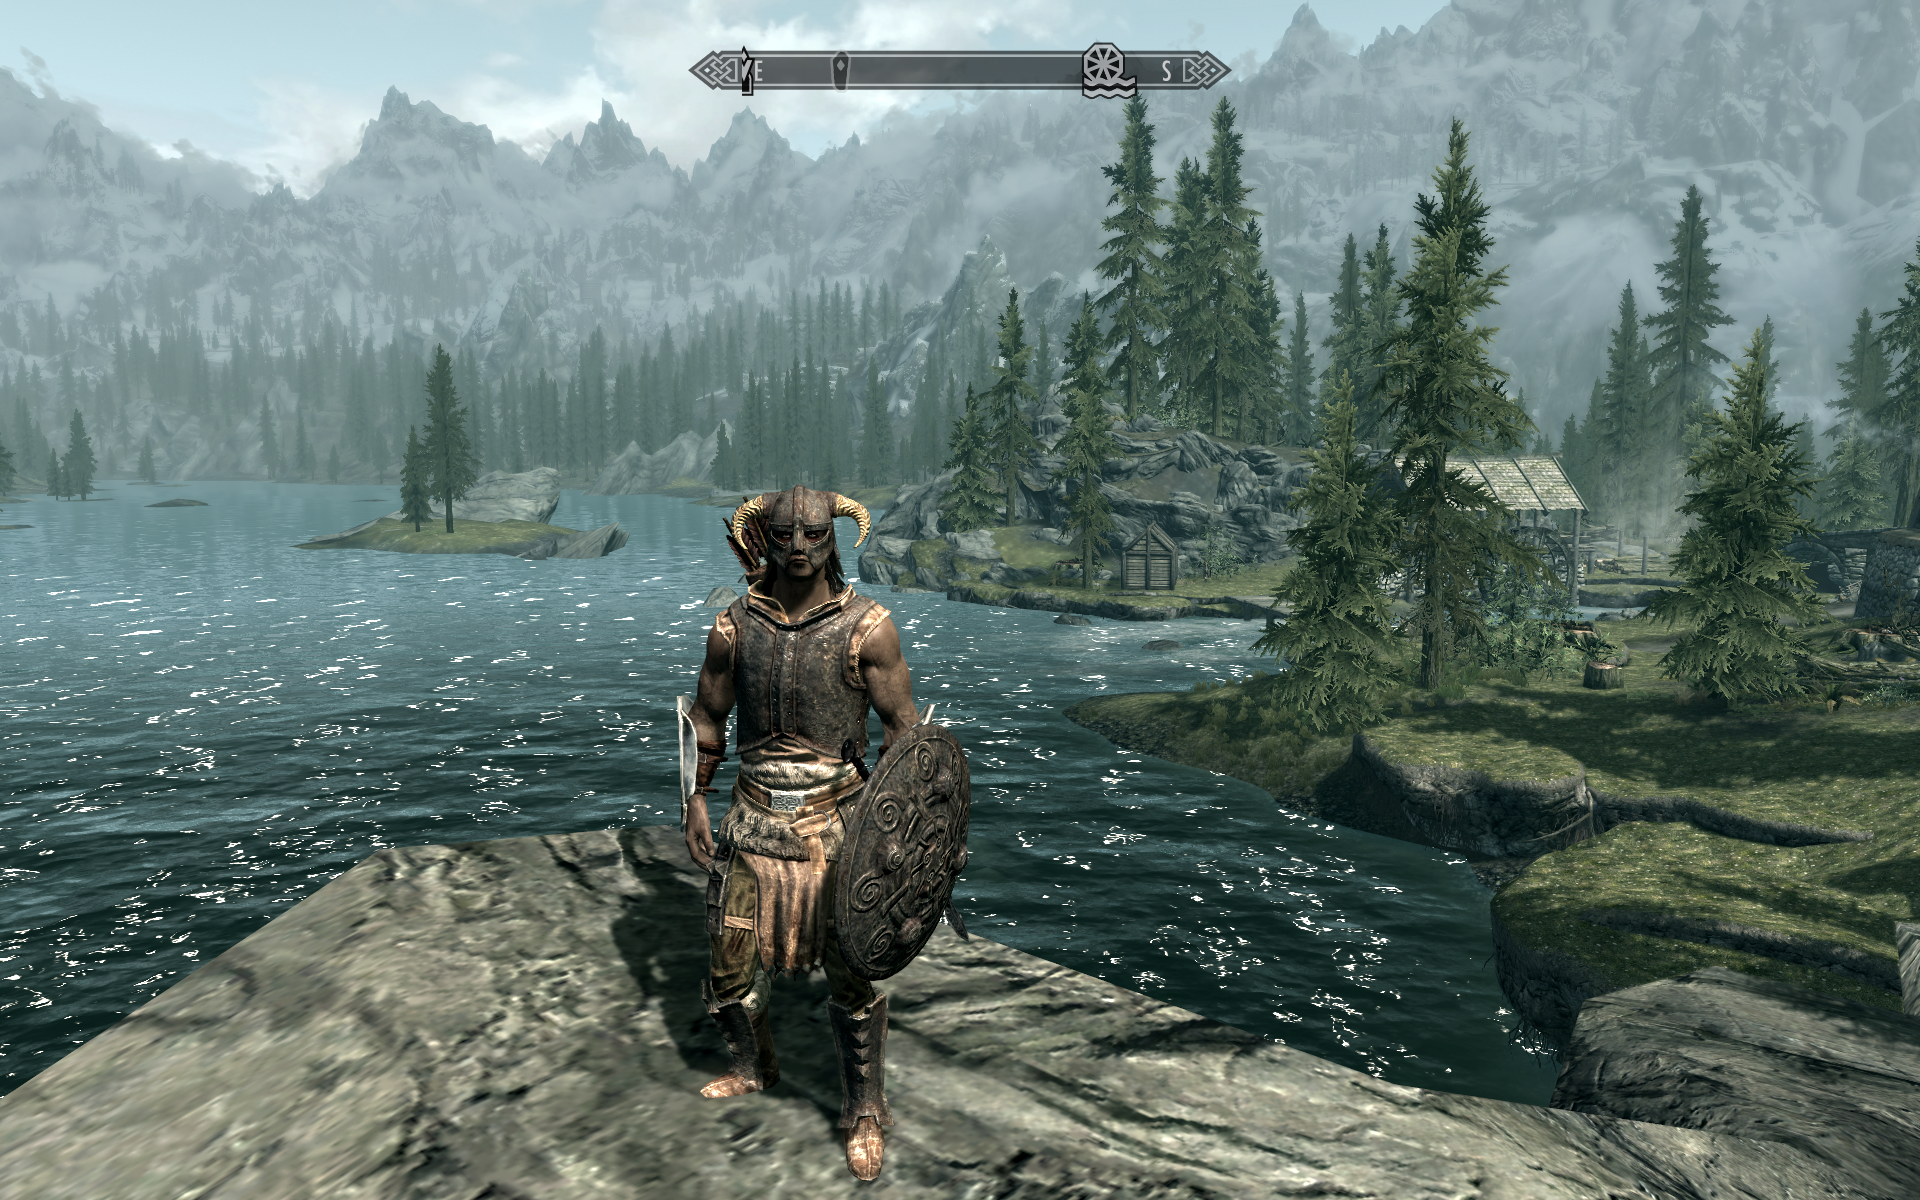 Skyrim 's navigational compass is sleek and elegant, & doesn't distract from gameplay.